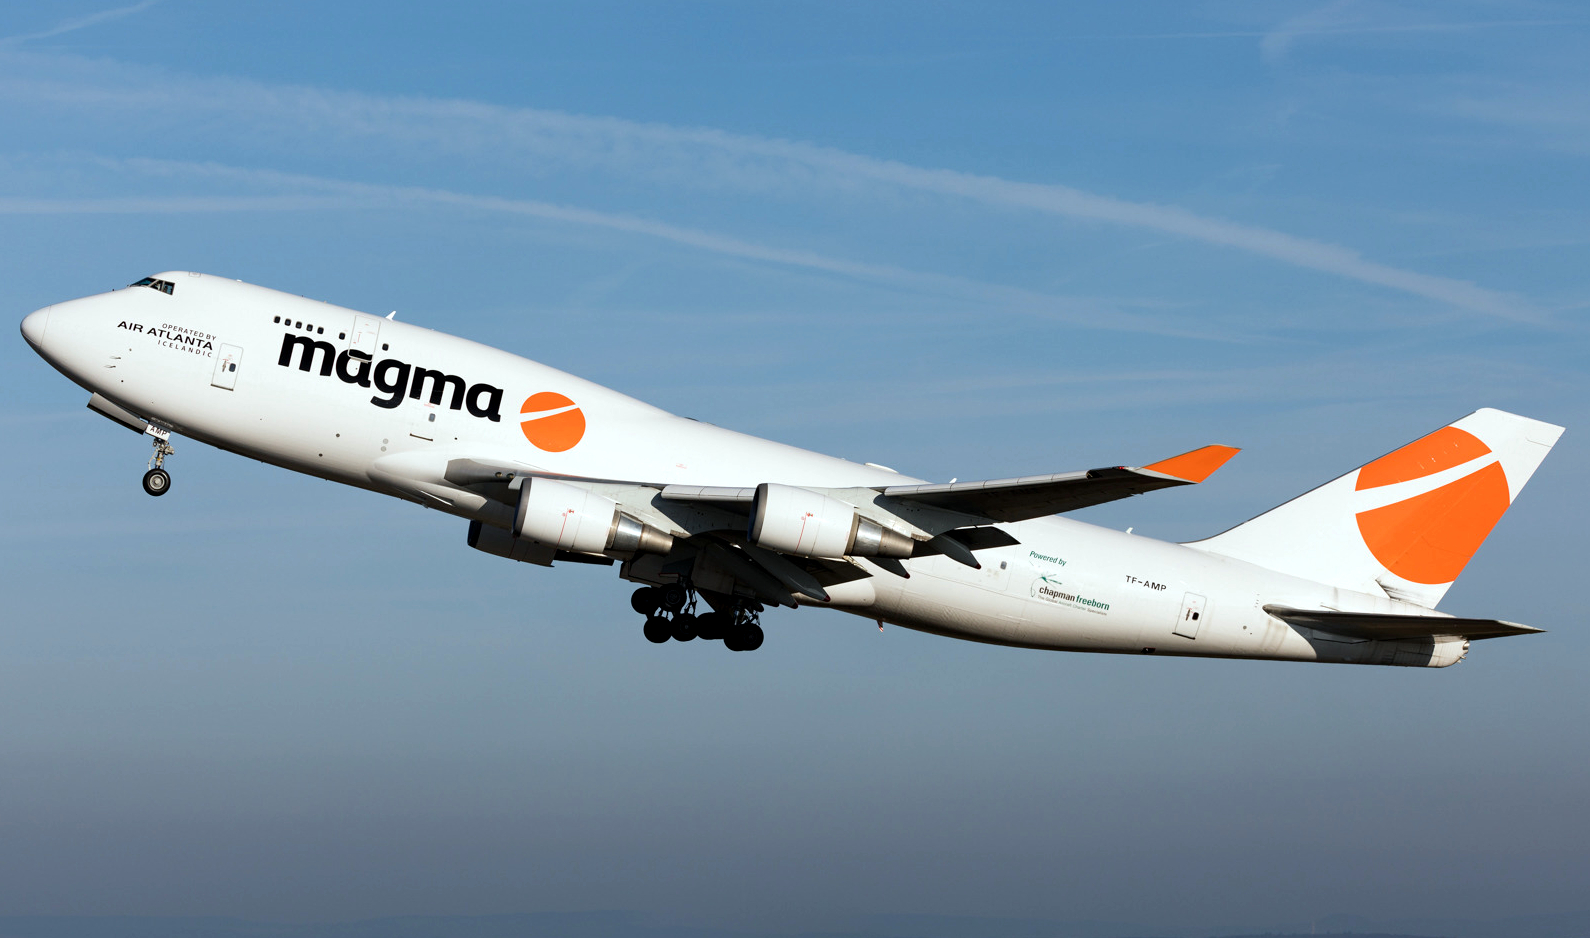 Magma Aviation Boeing 747-400 Freighter Climbing Off